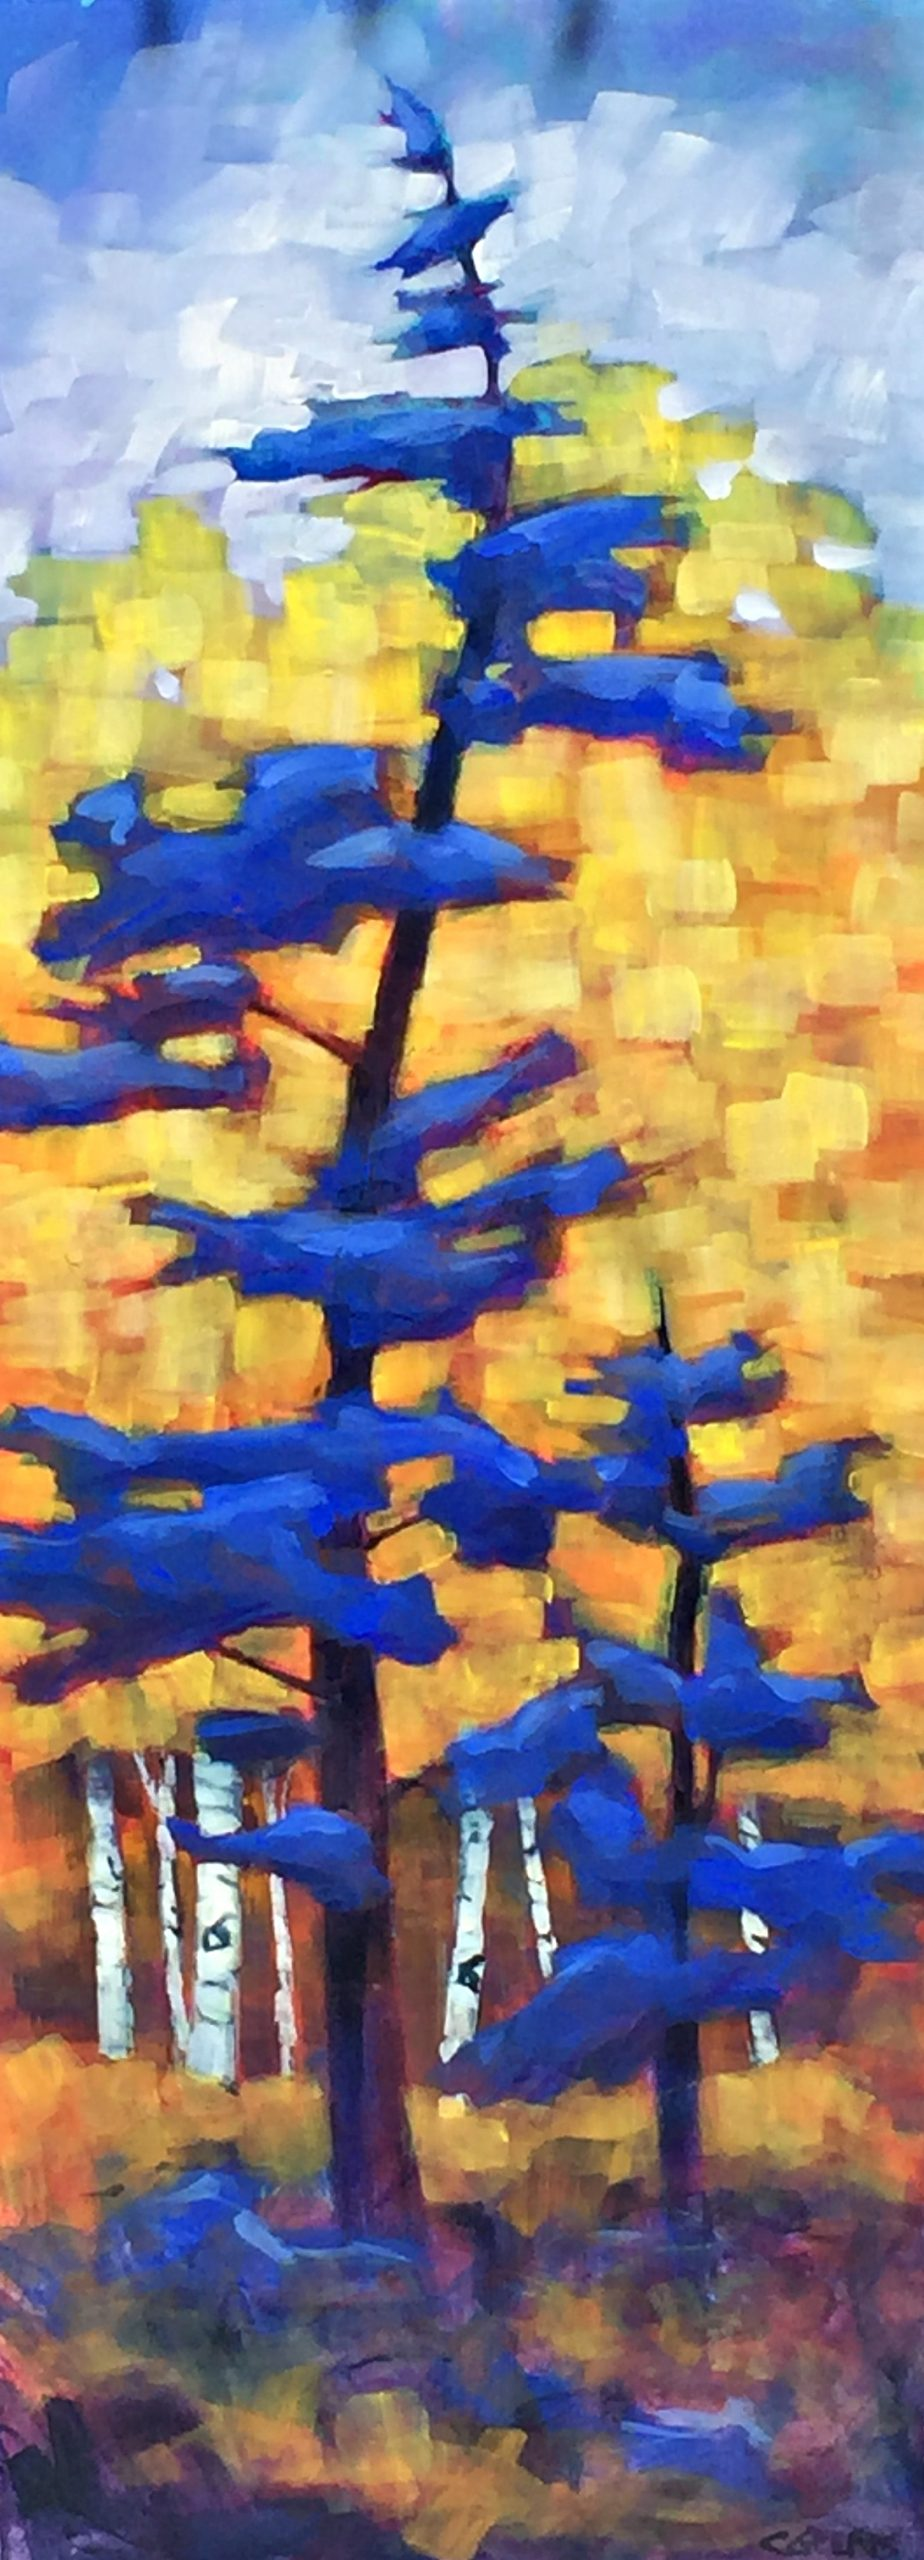 Blue Spruce, acrylic tree painting by Connie Geerts | Effusion Art Gallery + Cast Glass Studio, Invermere BC